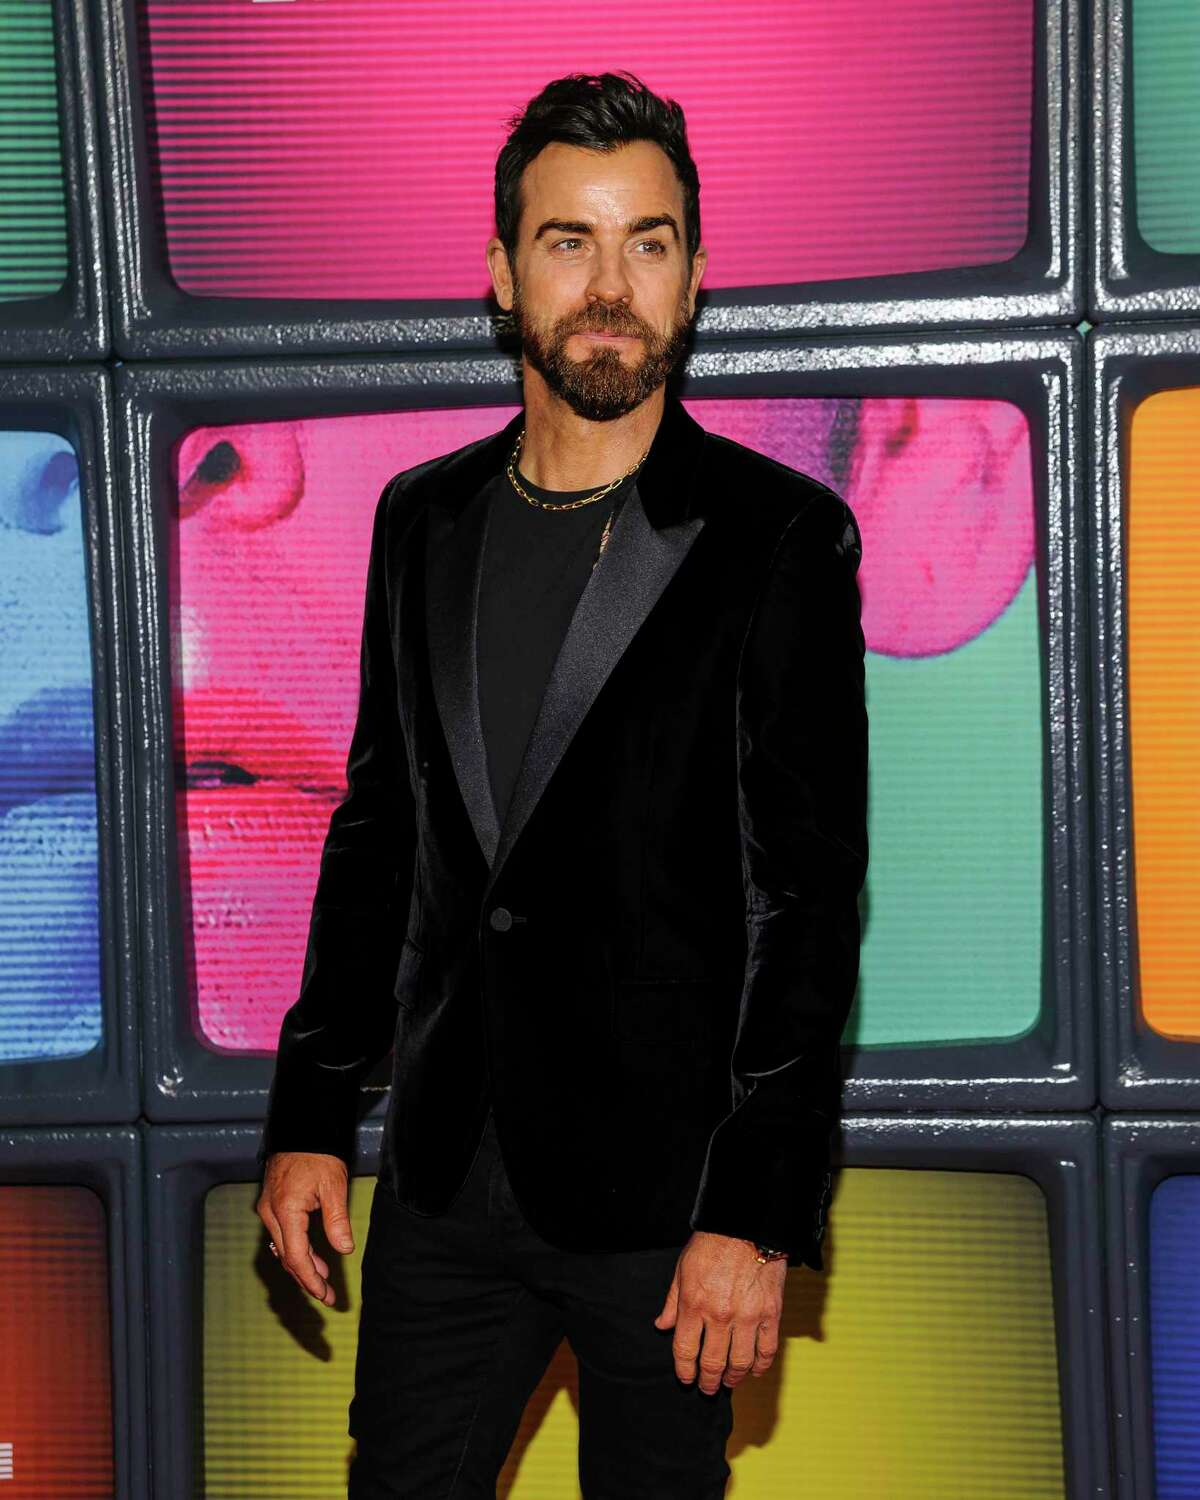 """Justin Theroux, hereattendingNetflix's """"Maniac"""" season one premiere on Sept. 20, 2018, in New York, is set to star in """"The White House Plumbers,"""" an HBO series on the Watergate scandal that is expected to shoot in Albany this summer and fall. (Photo by Christopher Smith/Invision/AP)"""